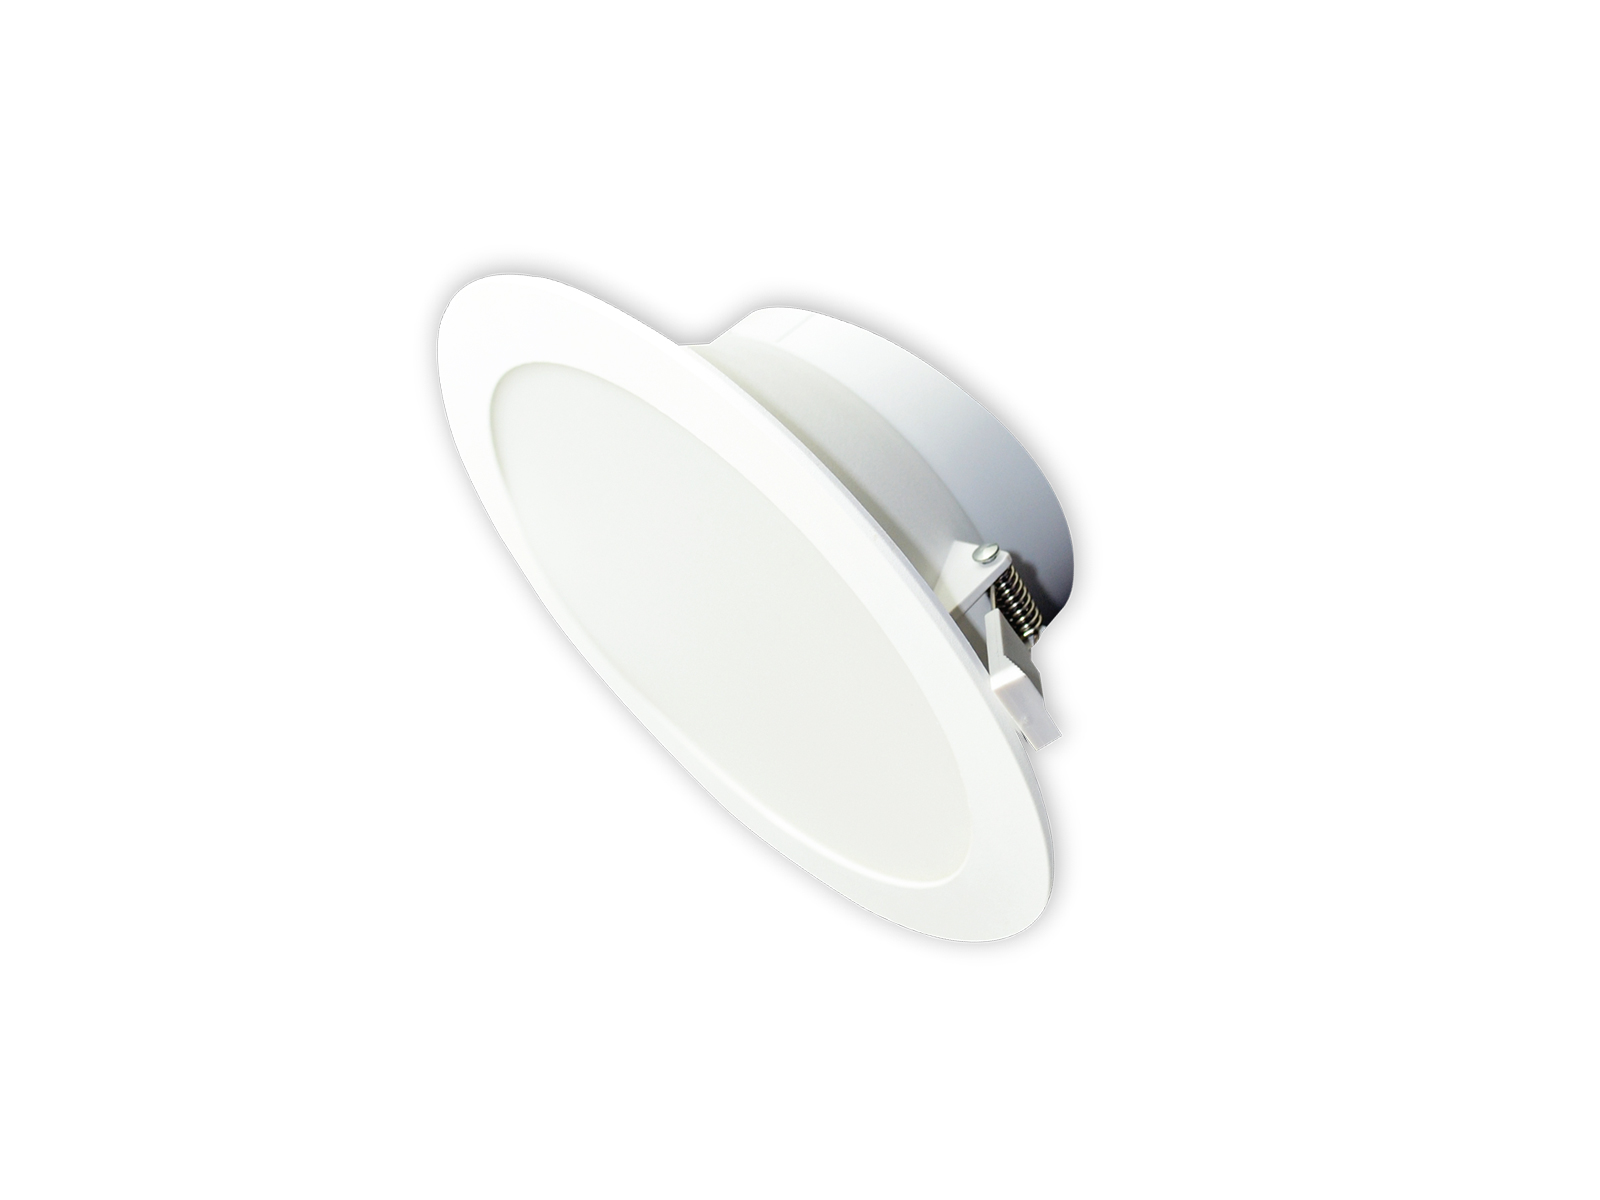 sunshine-12w-led-downlight-sembawang-lighting-house.jpg